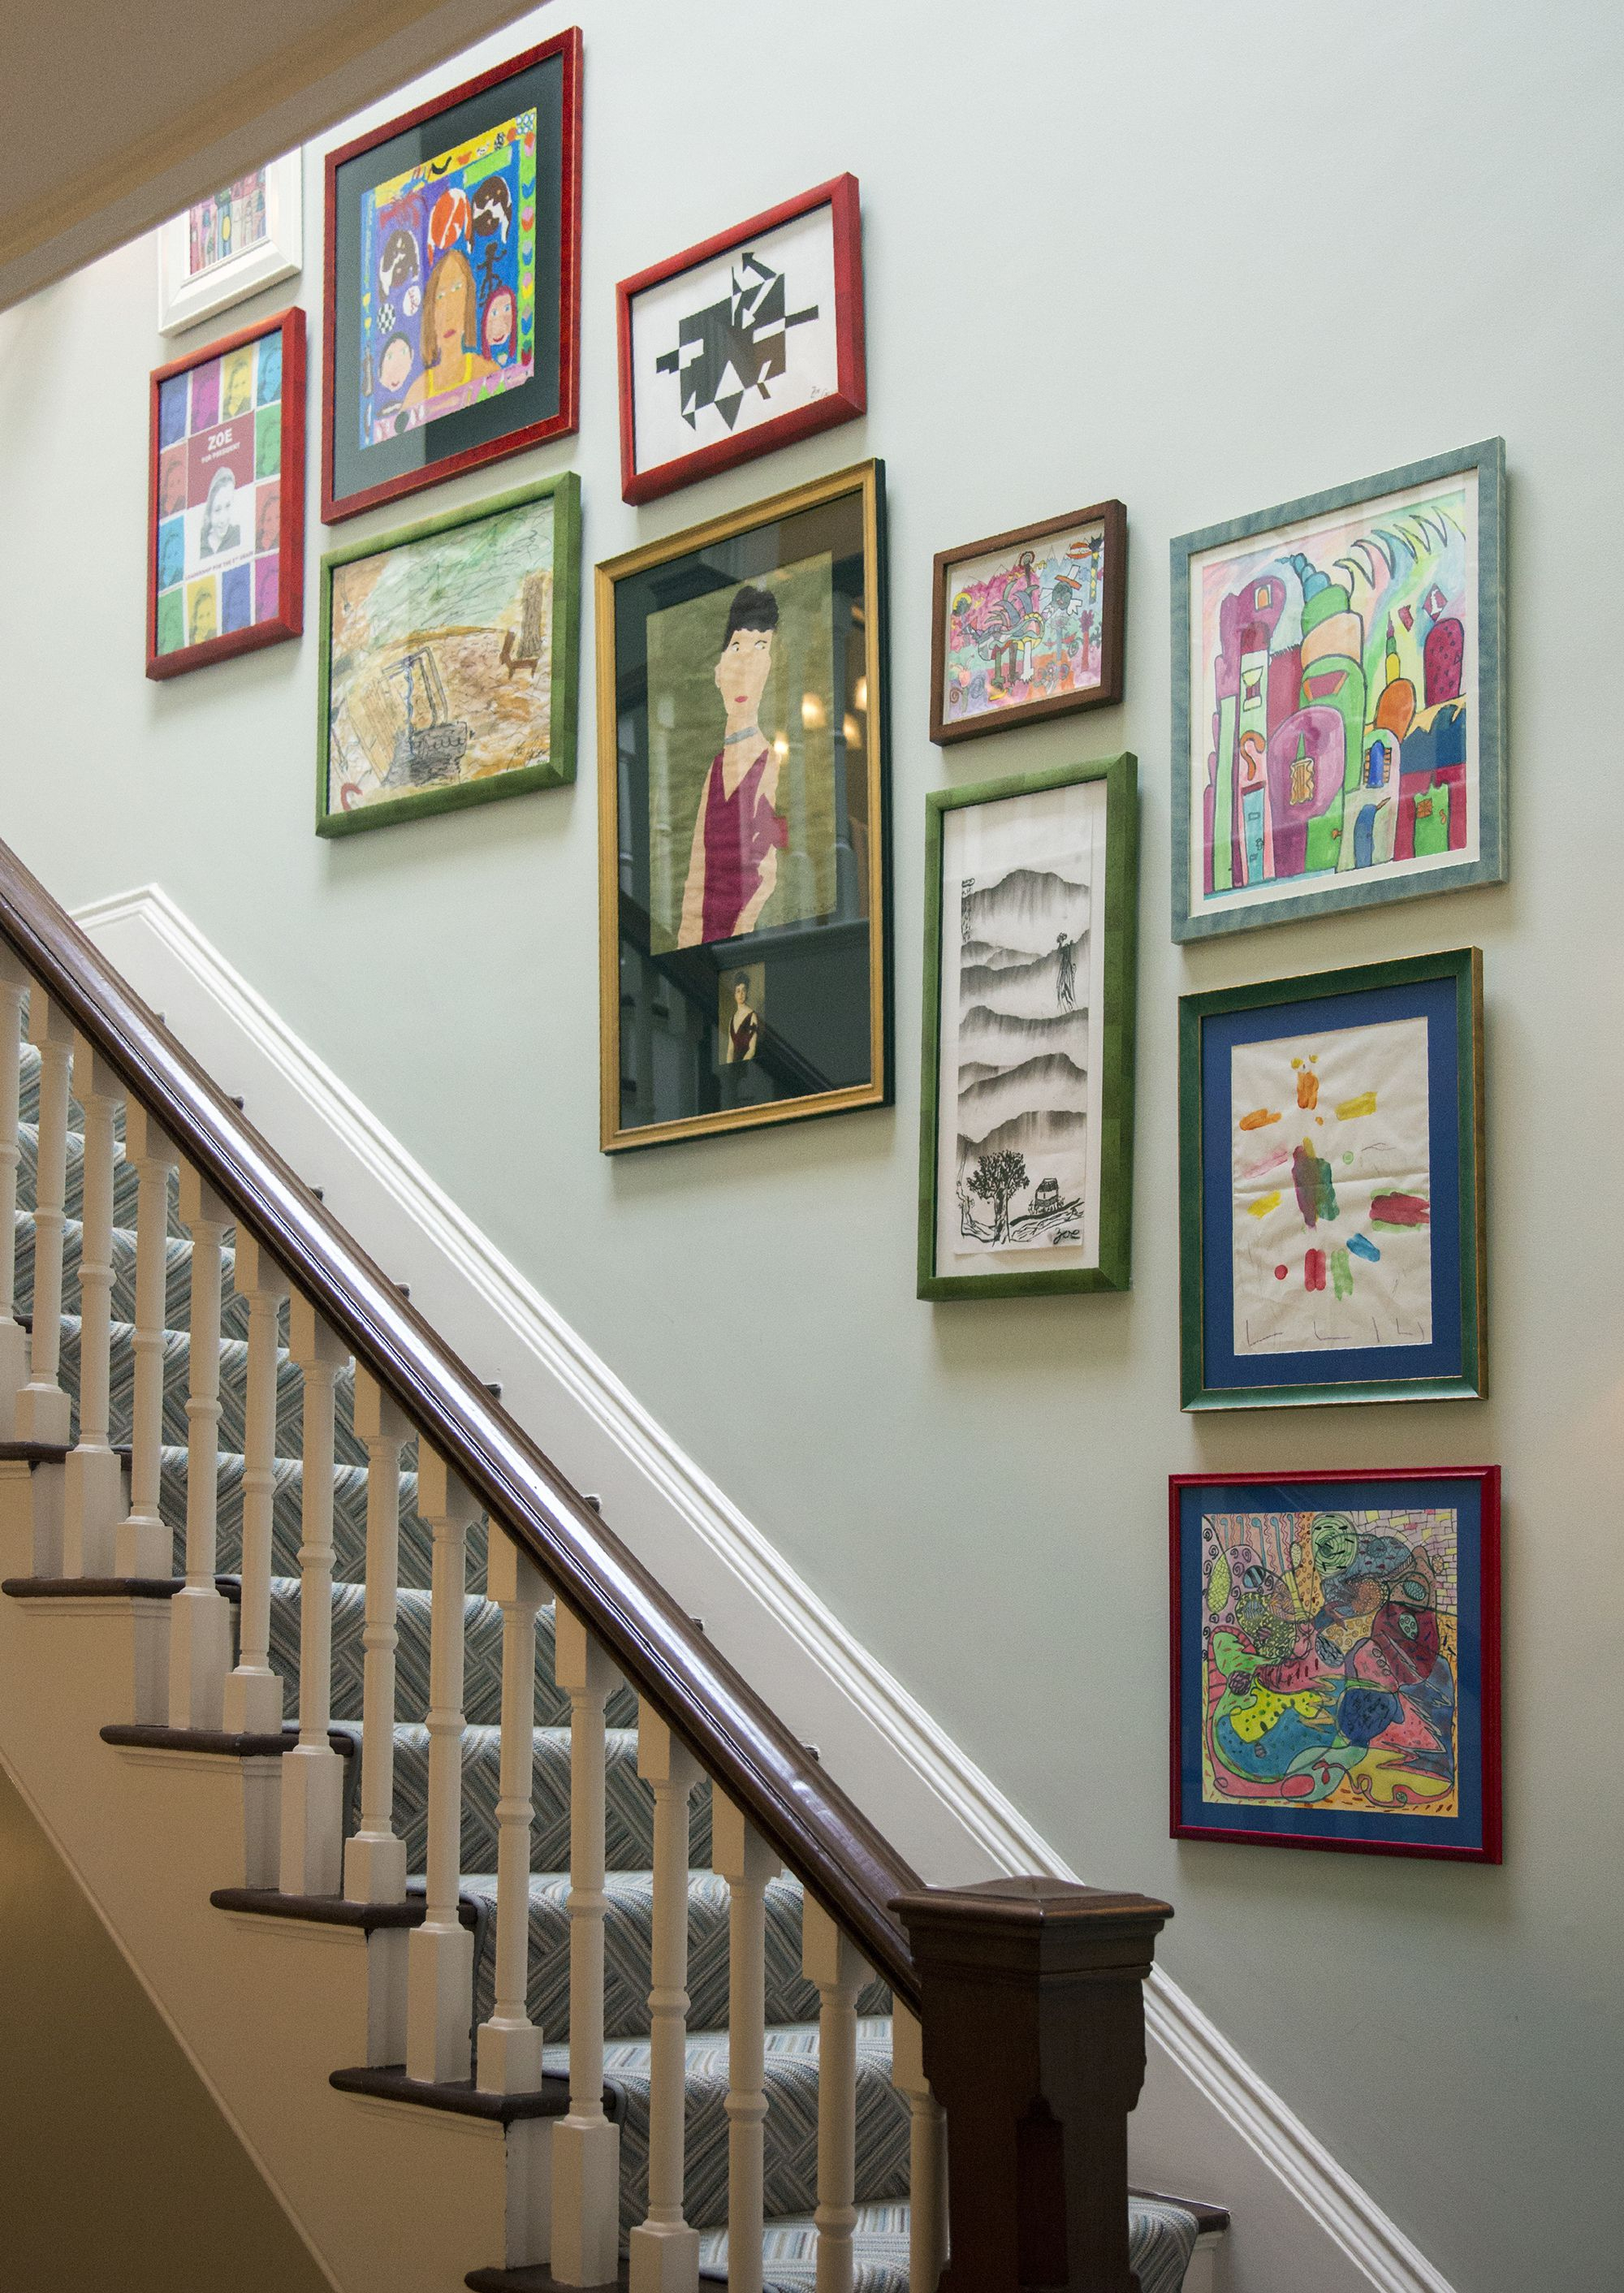 27 Stylish Staircase Decorating Ideas – How To Decorate Stairways With Regard To 2019 Landing Art Wall Decor (View 2 of 20)